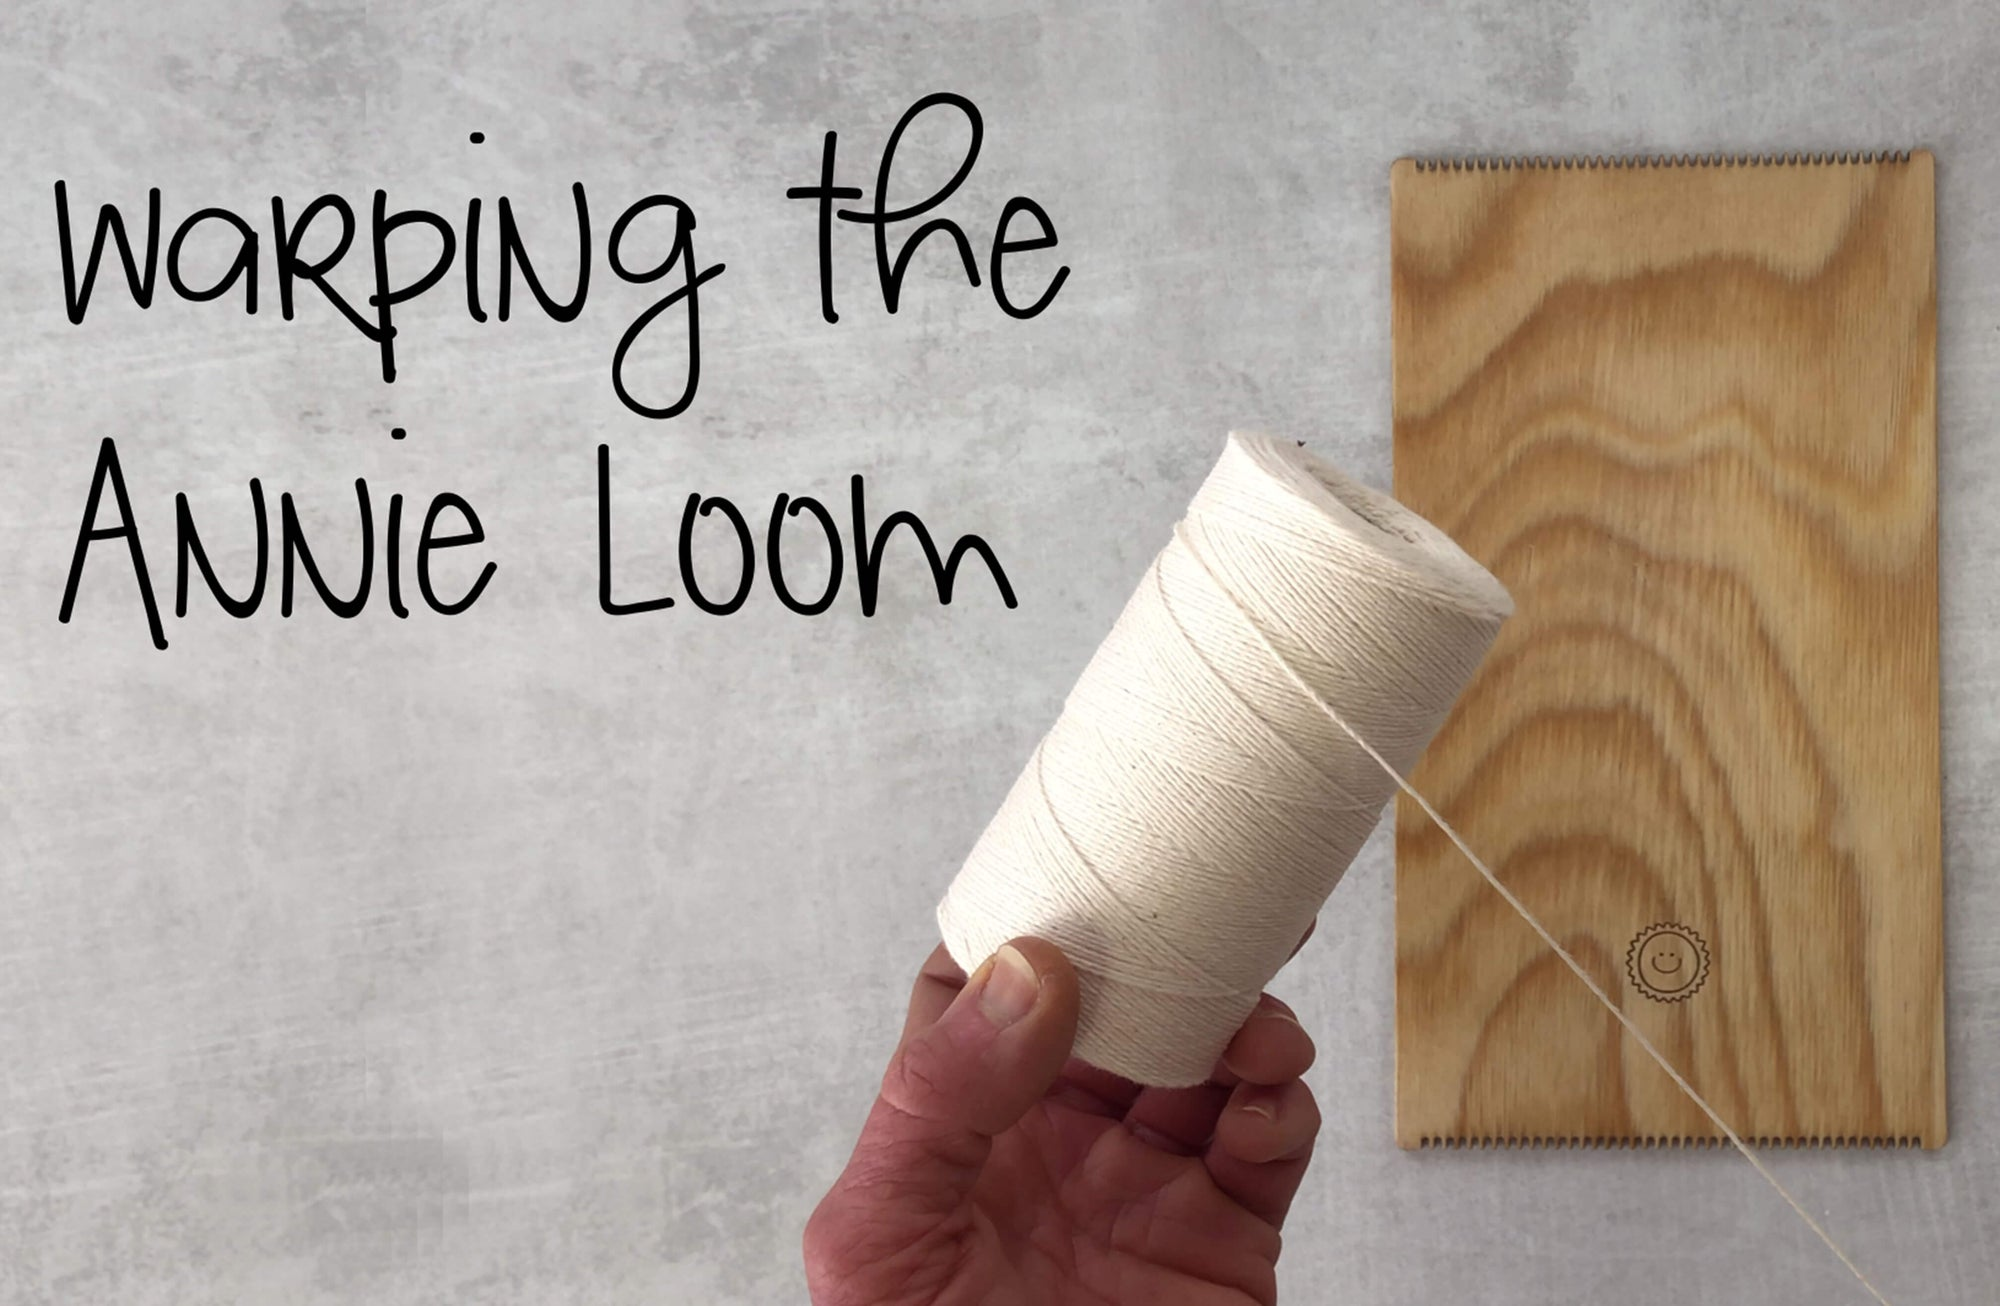 How to Warp the Annie Loom